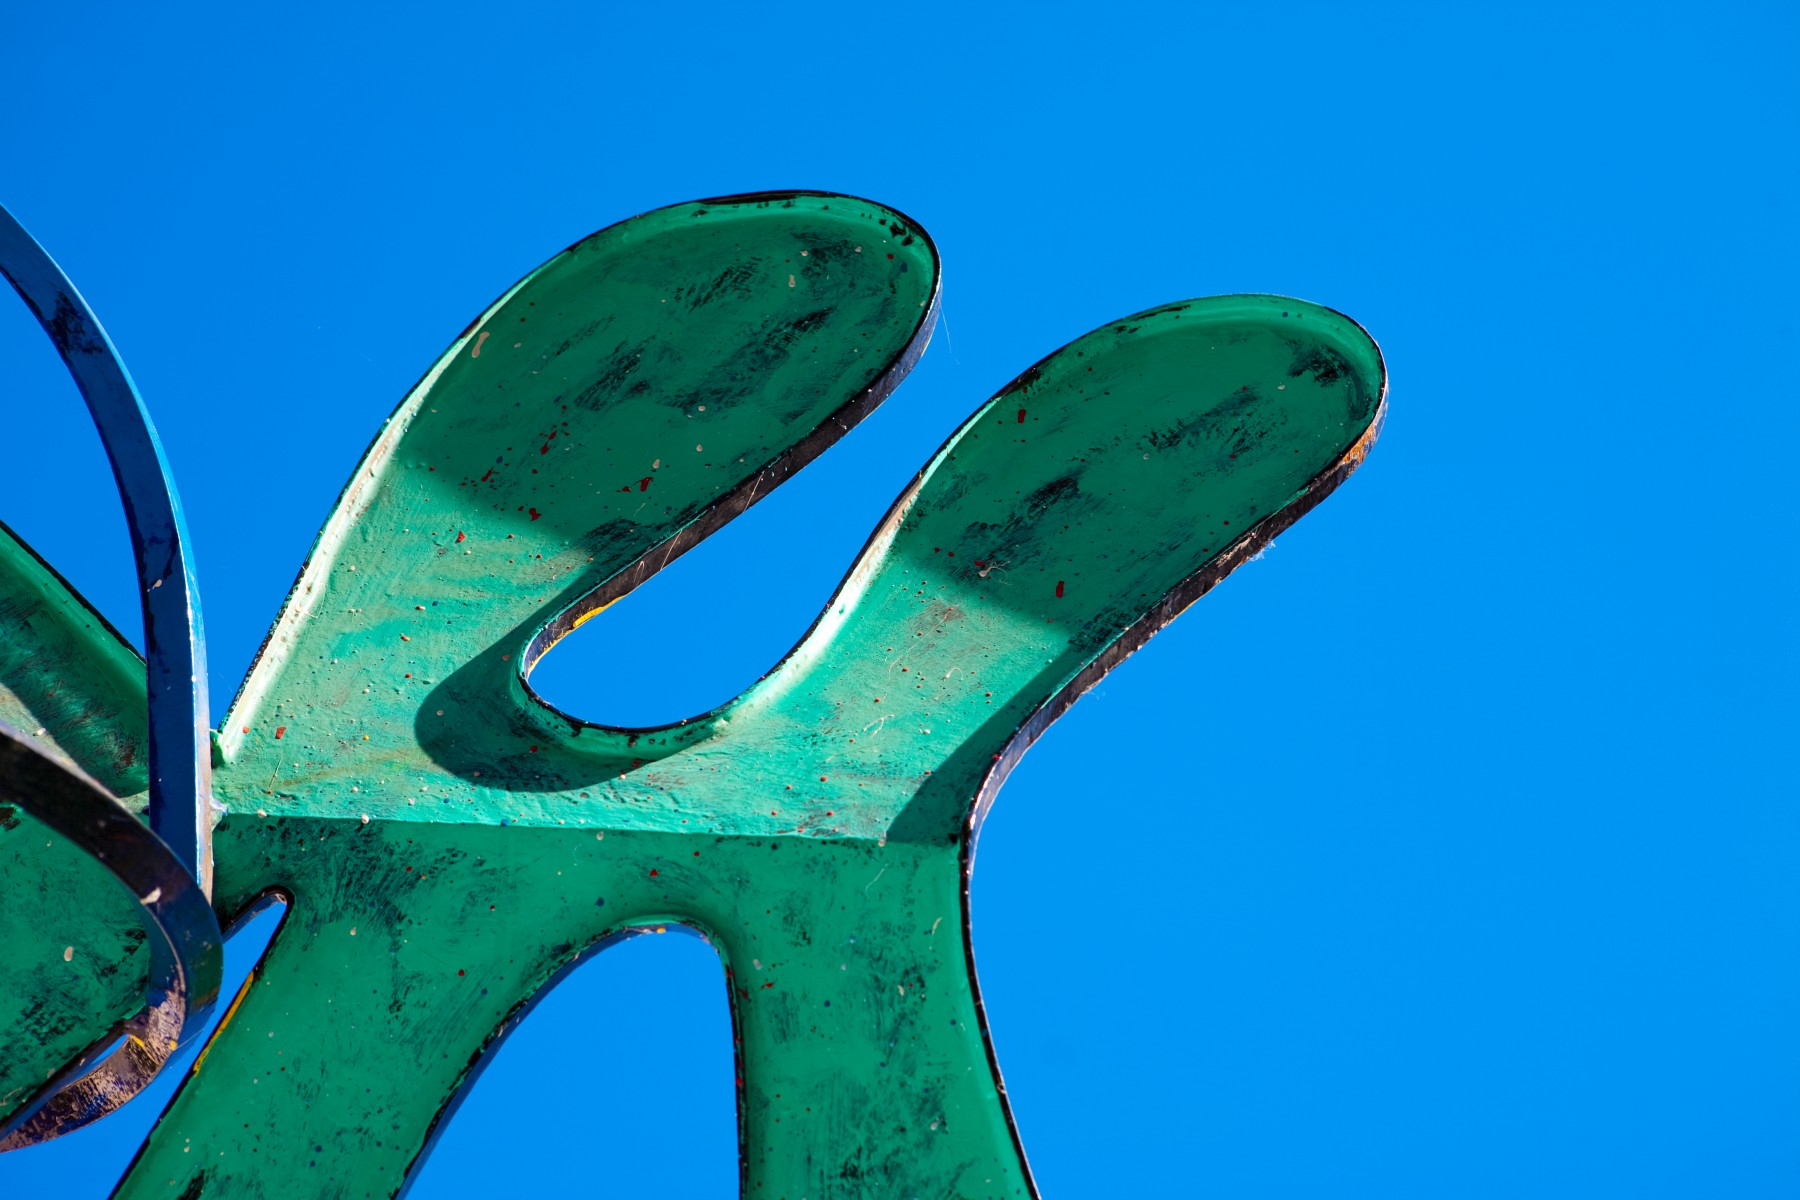 Green curvy surface with blue sky in background